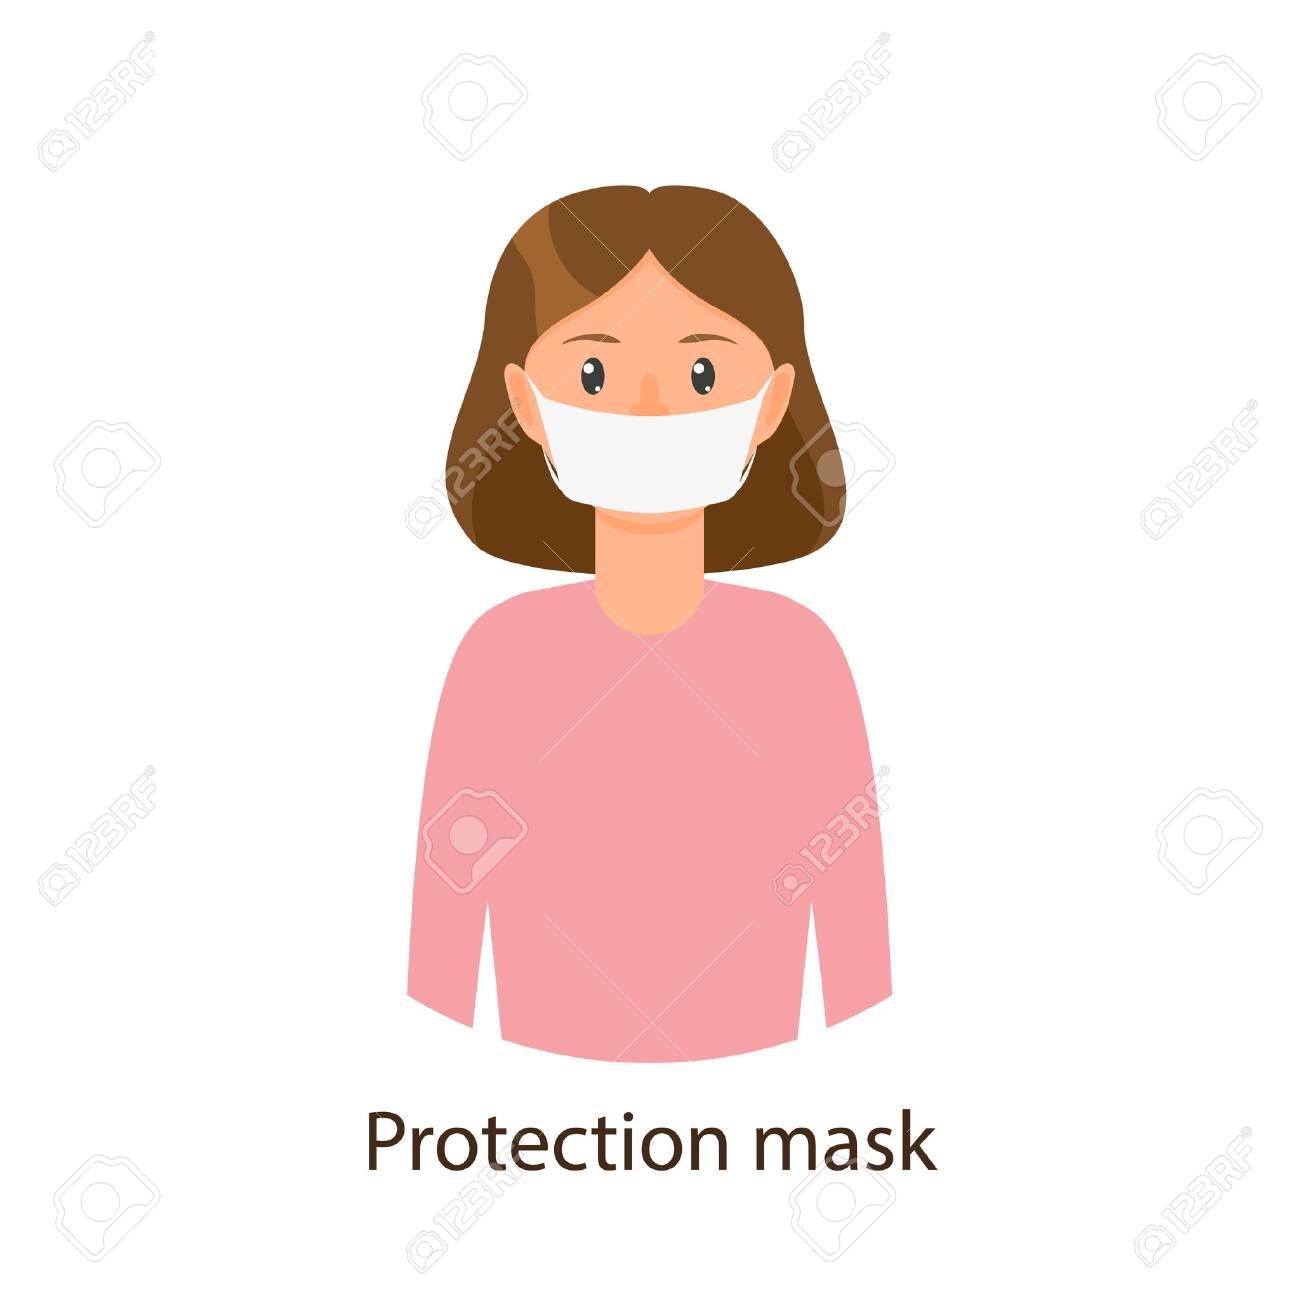 Vector cartoon young girl in pink pullover wearing protection mask. Flat isolated illustration on a white background. Illness and disease symptoms concept - 87535234